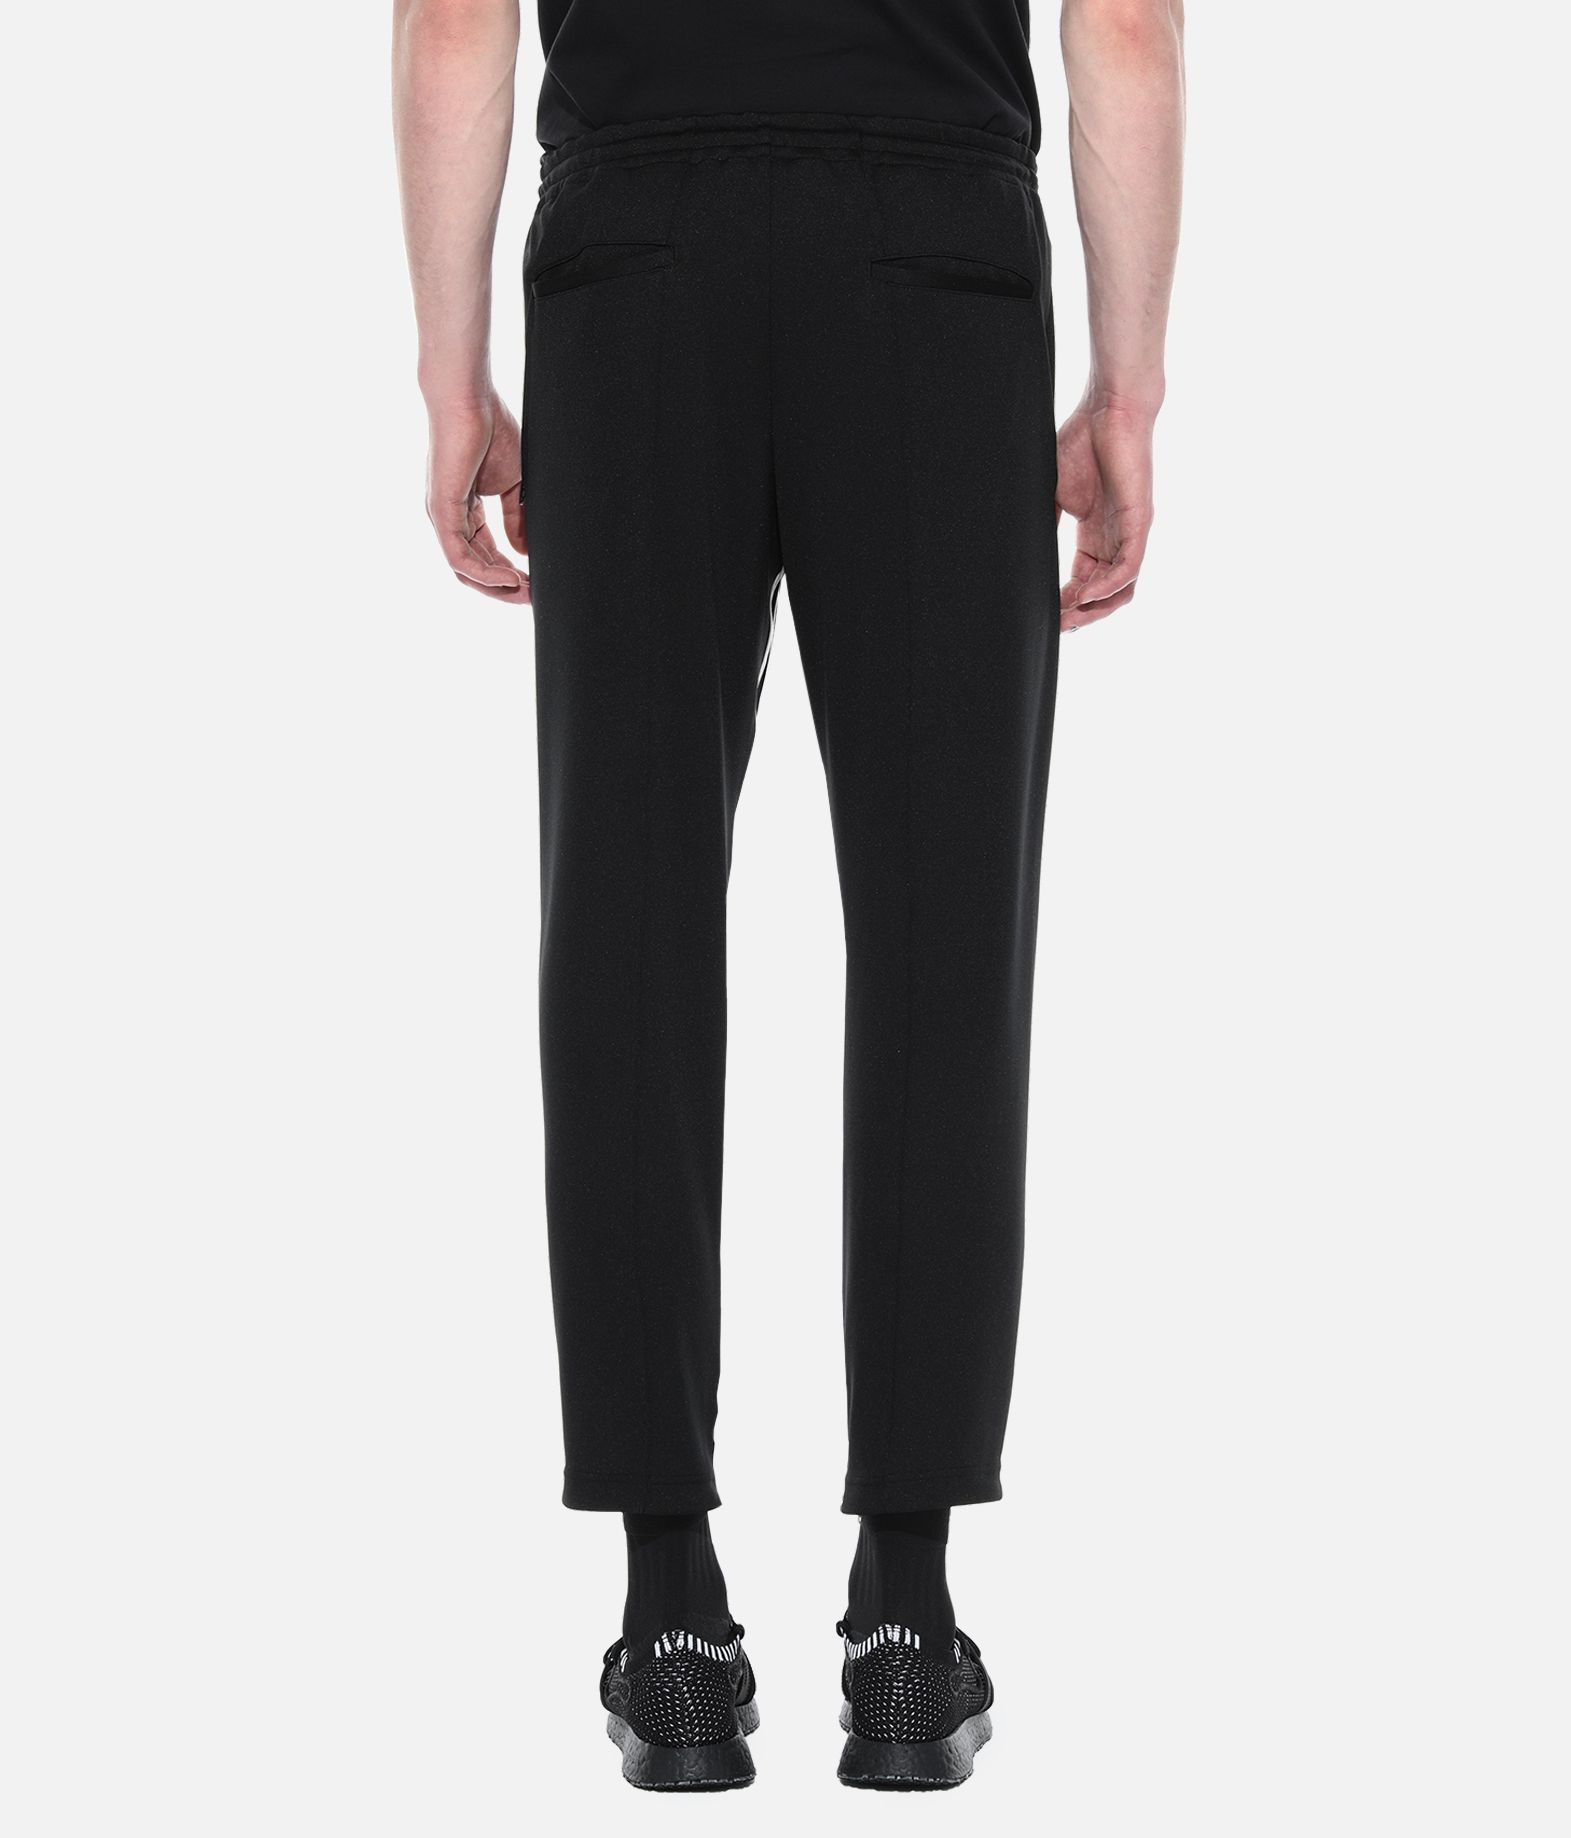 Y-3 Y-3 3-Stripes Cropped Track Pants Tracksuit bottoms Man d